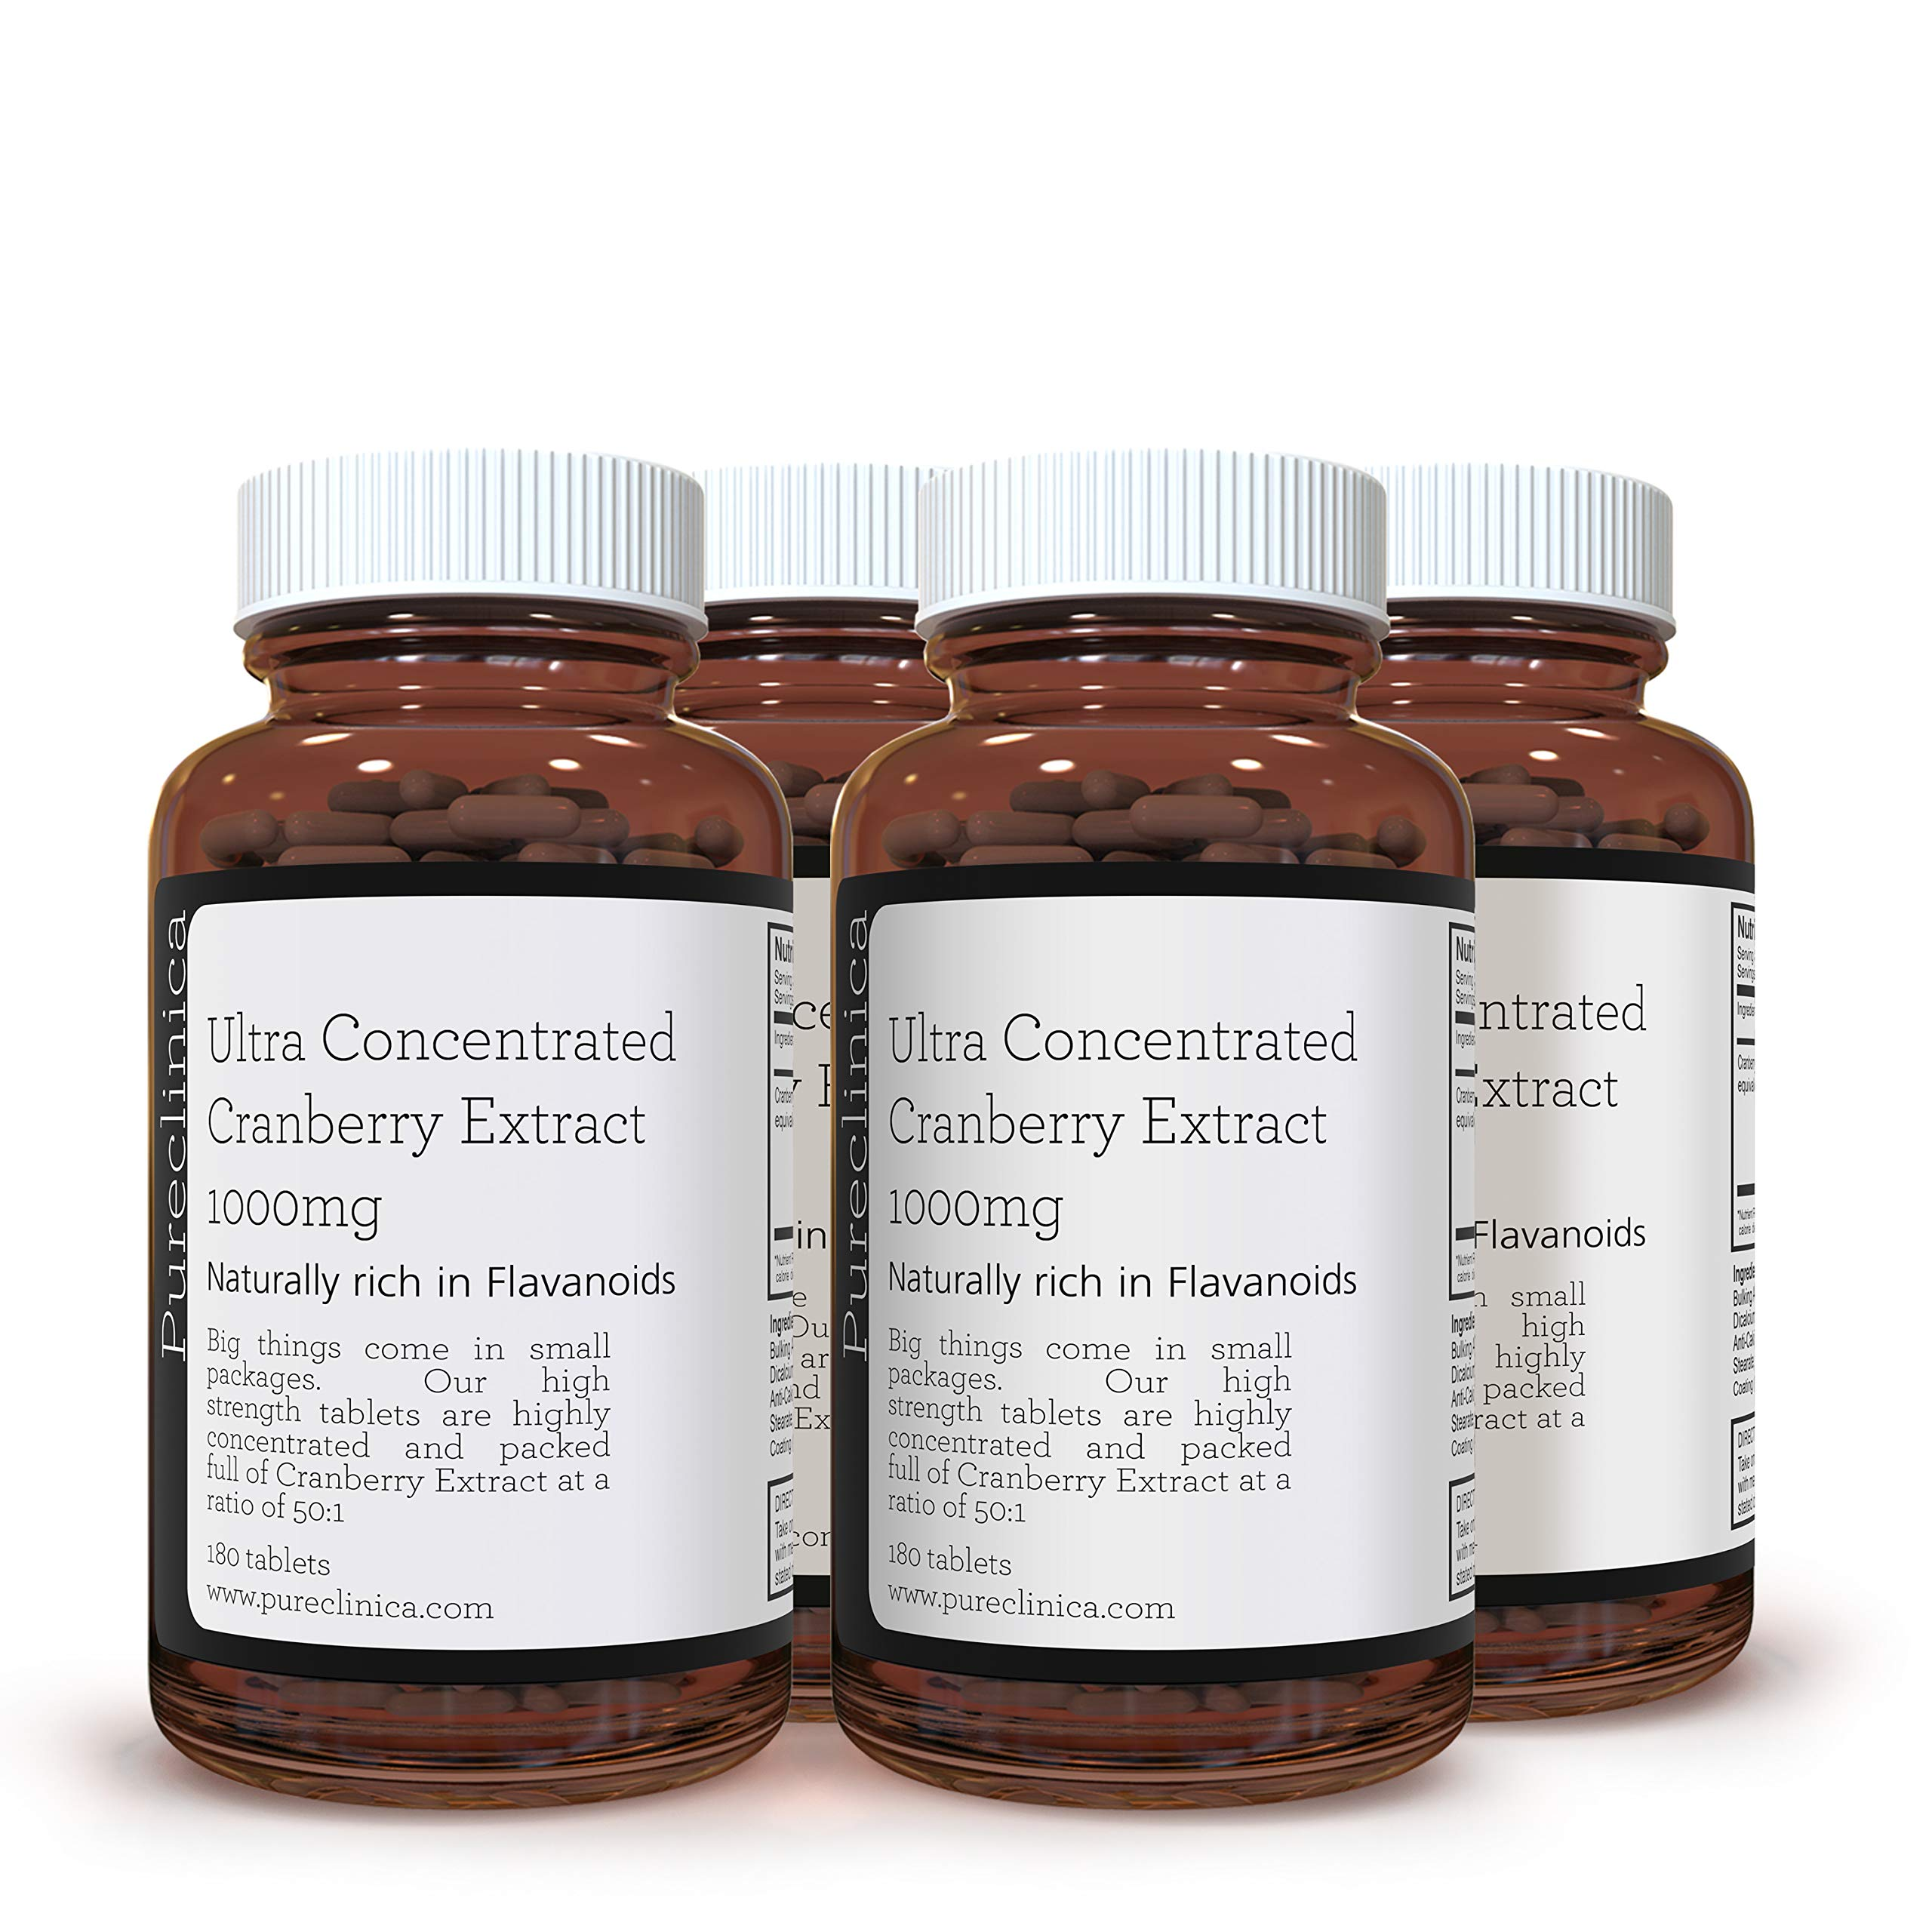 Ultra Concentrated Cranberry Extract 1000mg x 720 Tablets (4 Bottles of 180 Tablets - 1 Year Supply!) SKU: CRAN3x4